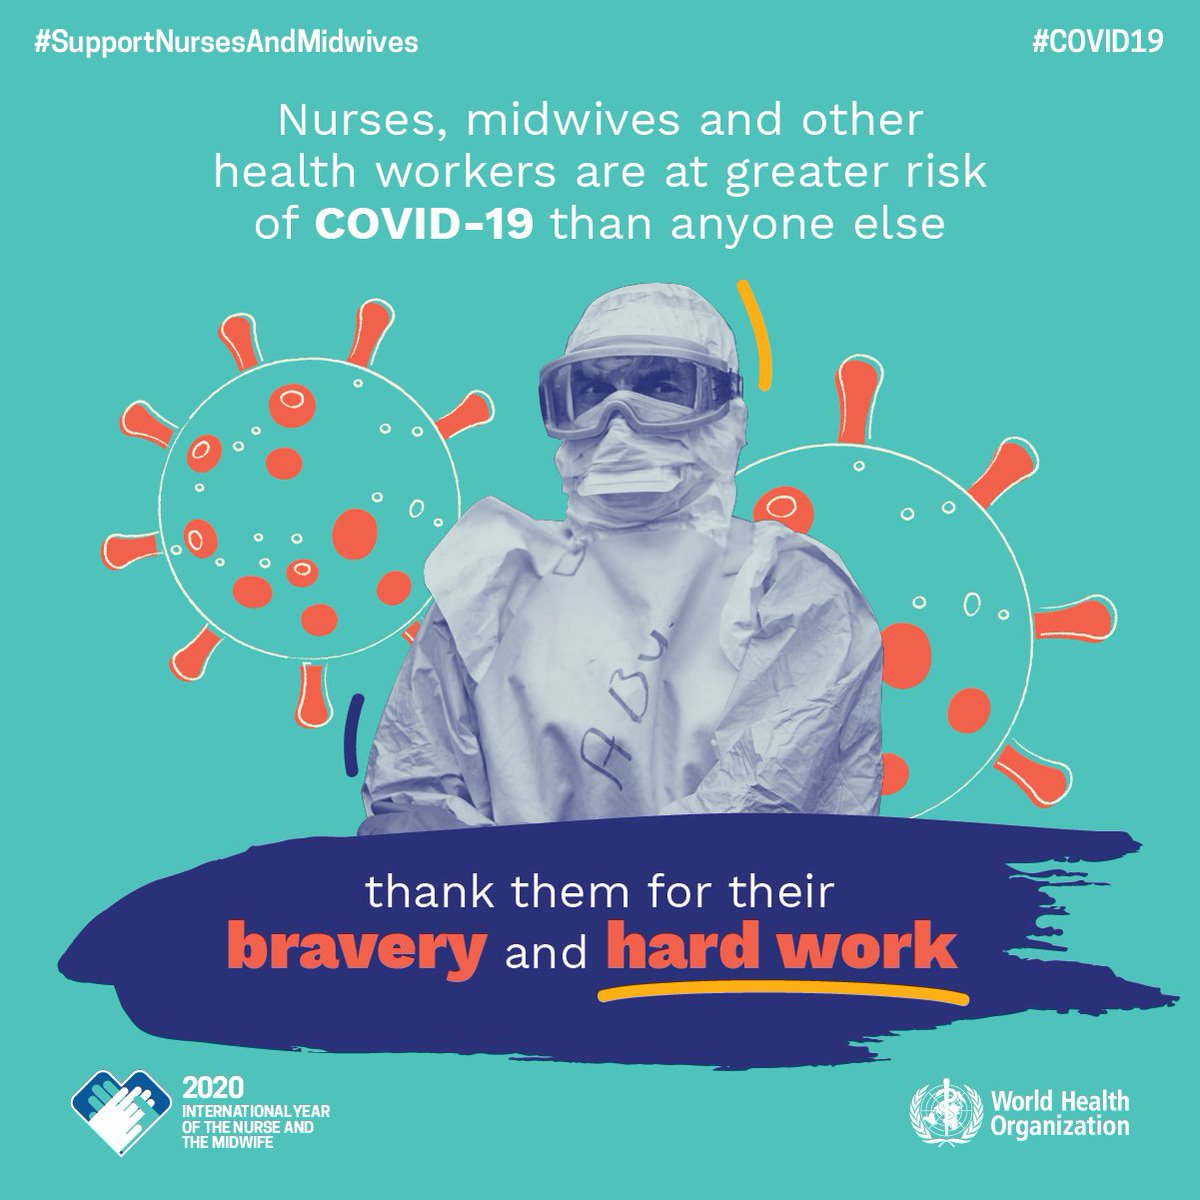 #COVID19 underscores the critical (and often unmet) need for protective equipment for nurses/midwives, which enables them to safely provide care and reduce the rate of infection in emergency settings. bit.ly/NursingReport2… #WorldHealthDay #SupportNursesAndMidwives